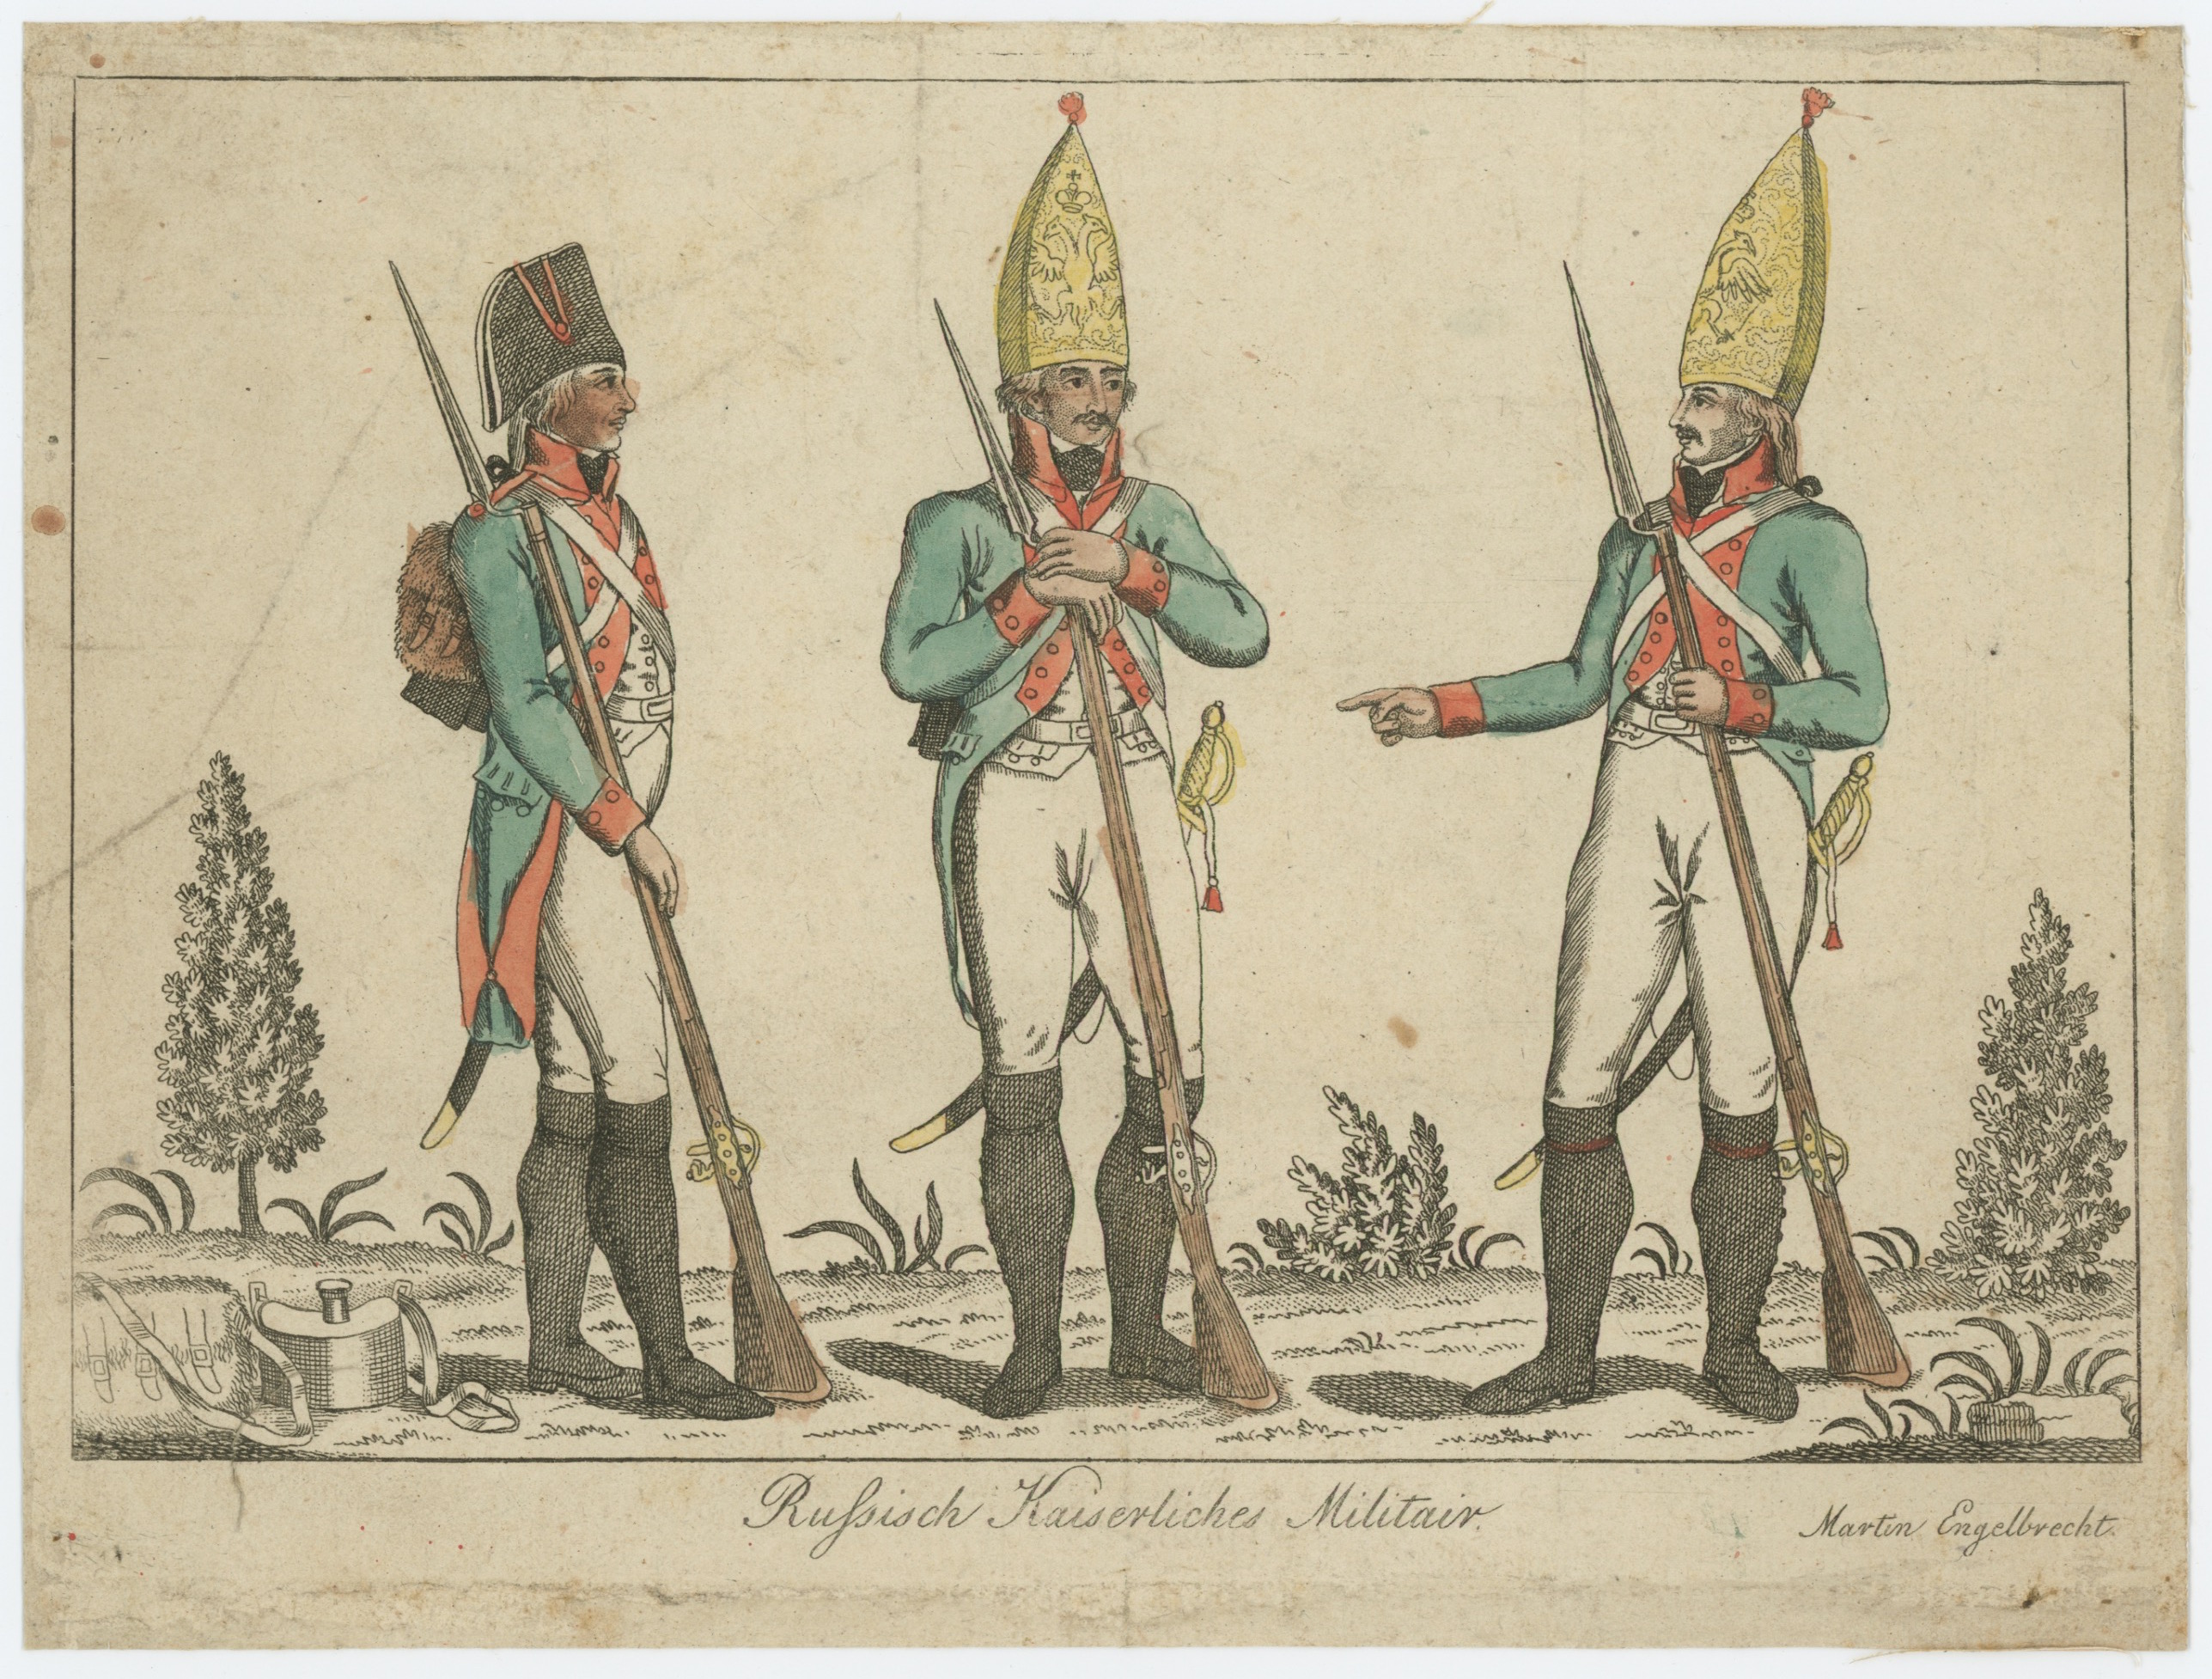 Gravure XVIII - XIX - Troupes Russes - Russich Kaiserliches Militair - Imagerie Anciennes Gravures Martin Engelbercht - Uniforme